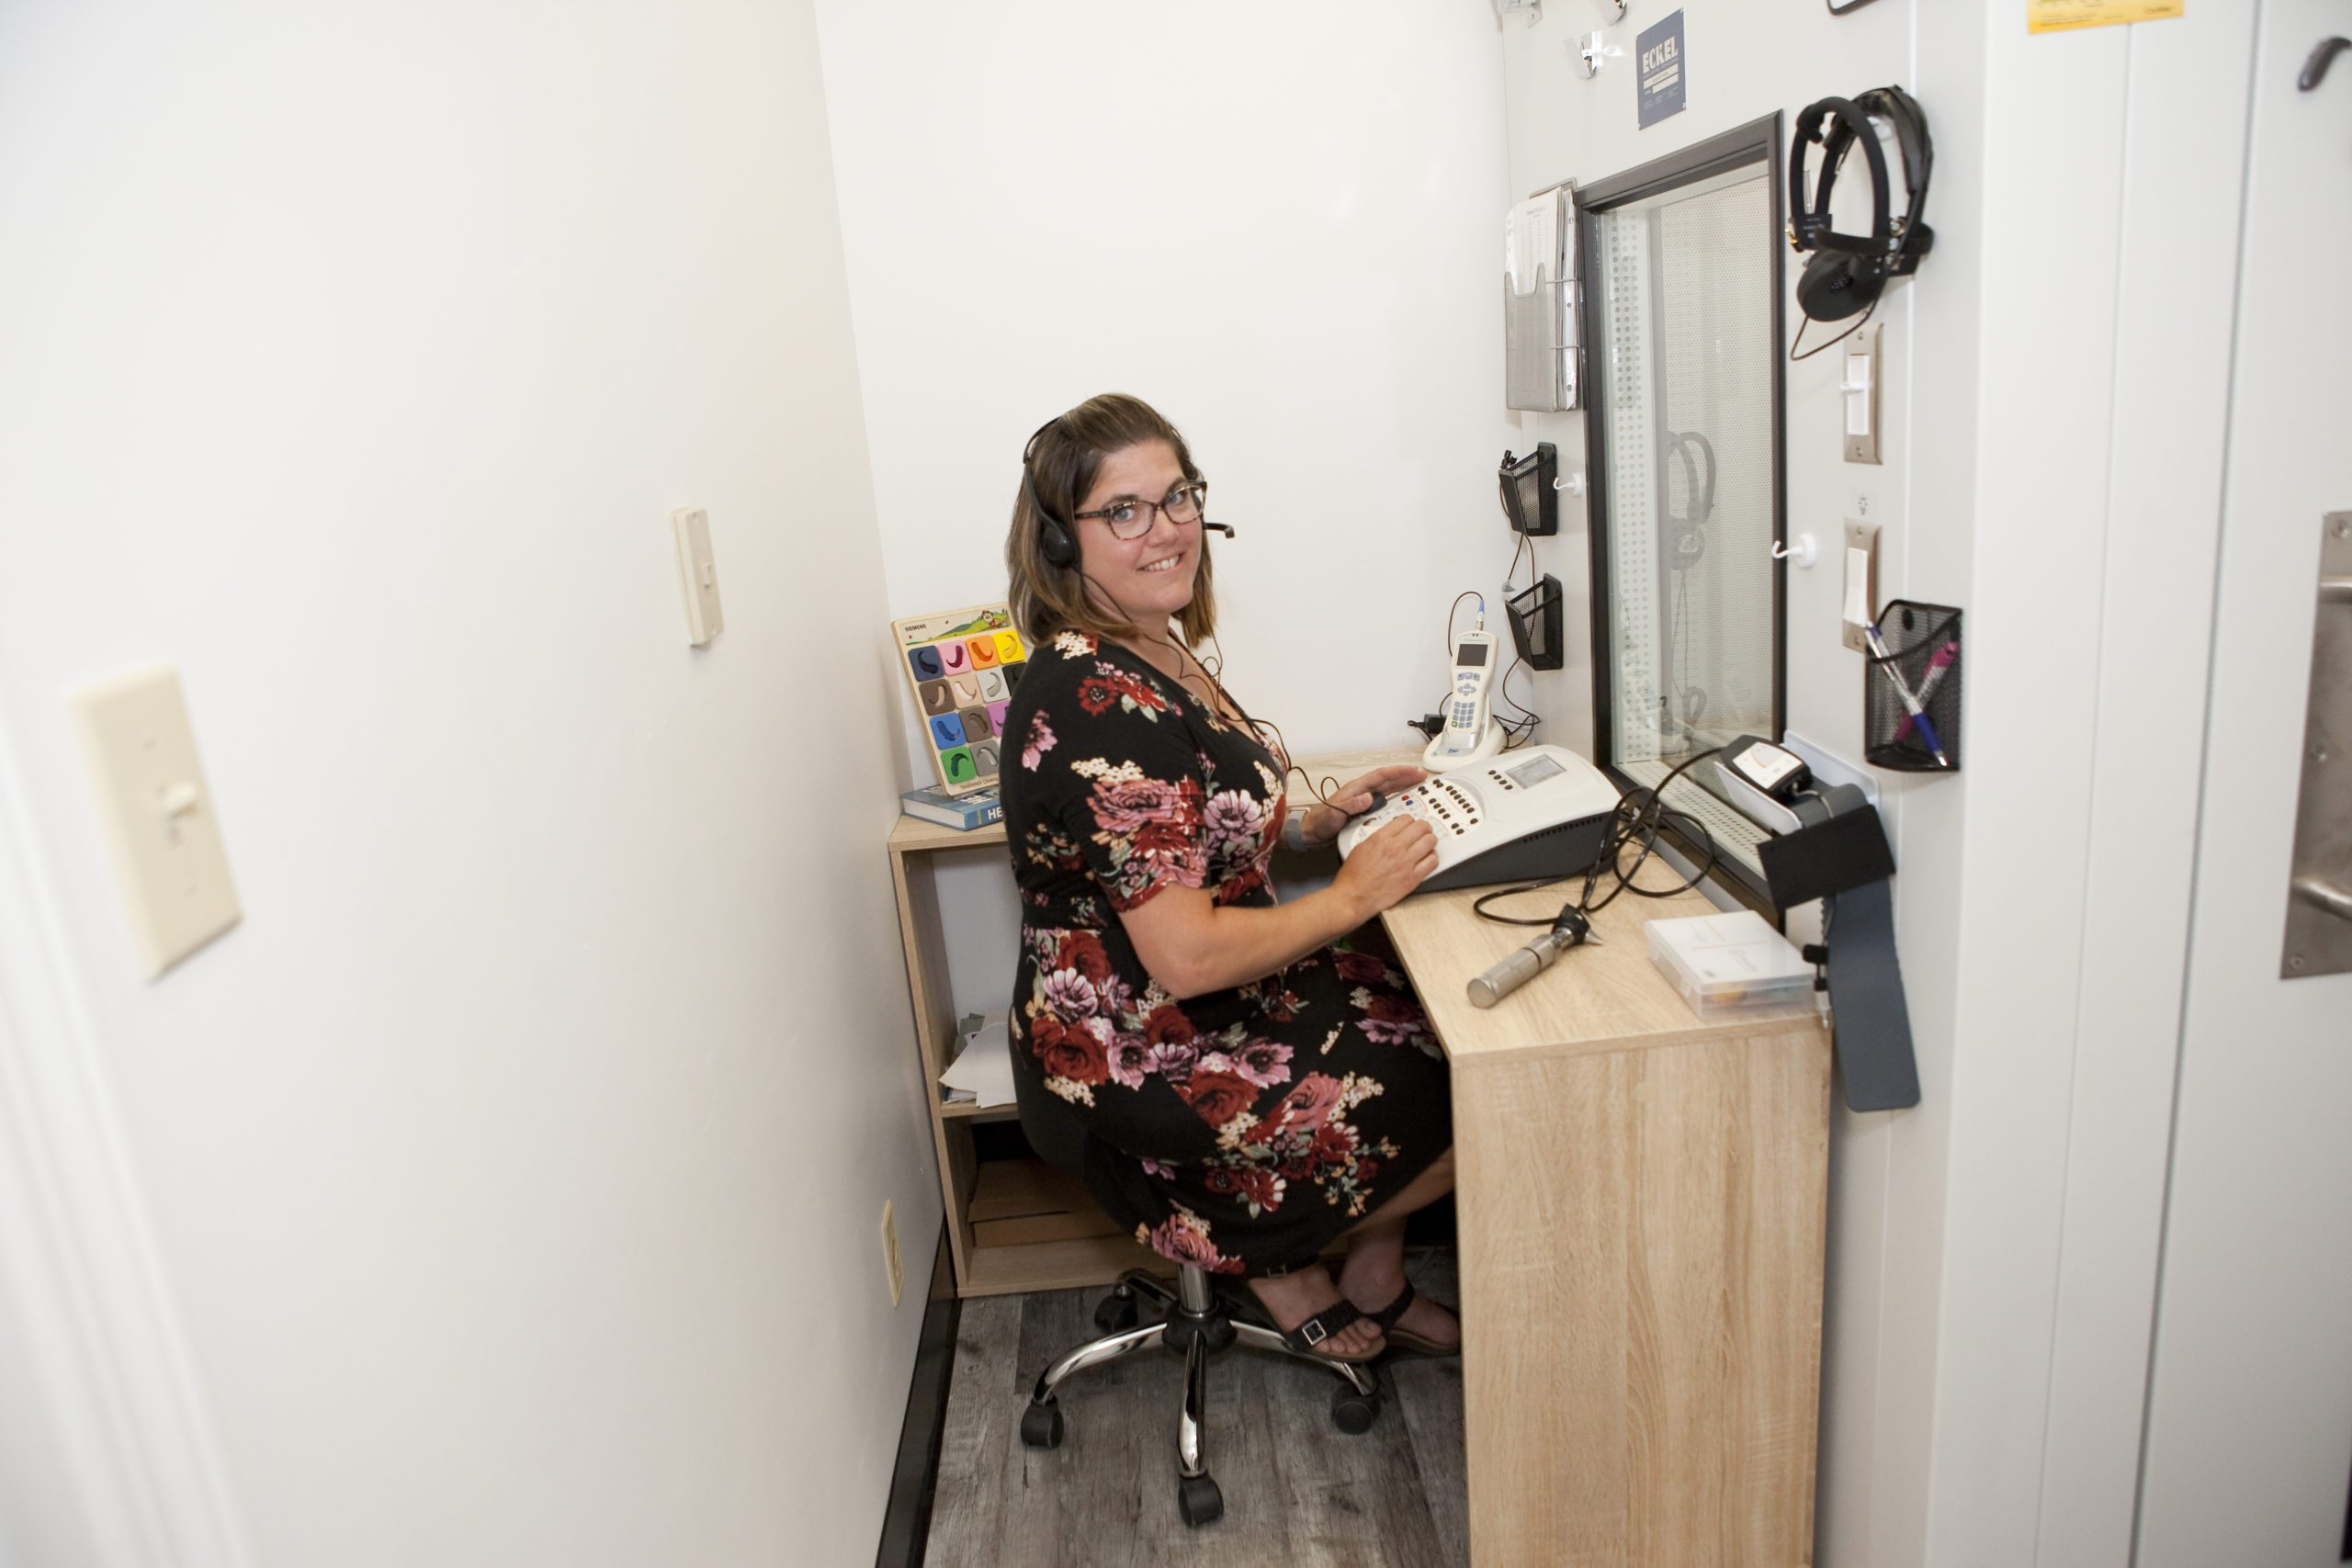 Candace Leake uses cutting edge equipment to properly and accurately diagnosis your hearing issues